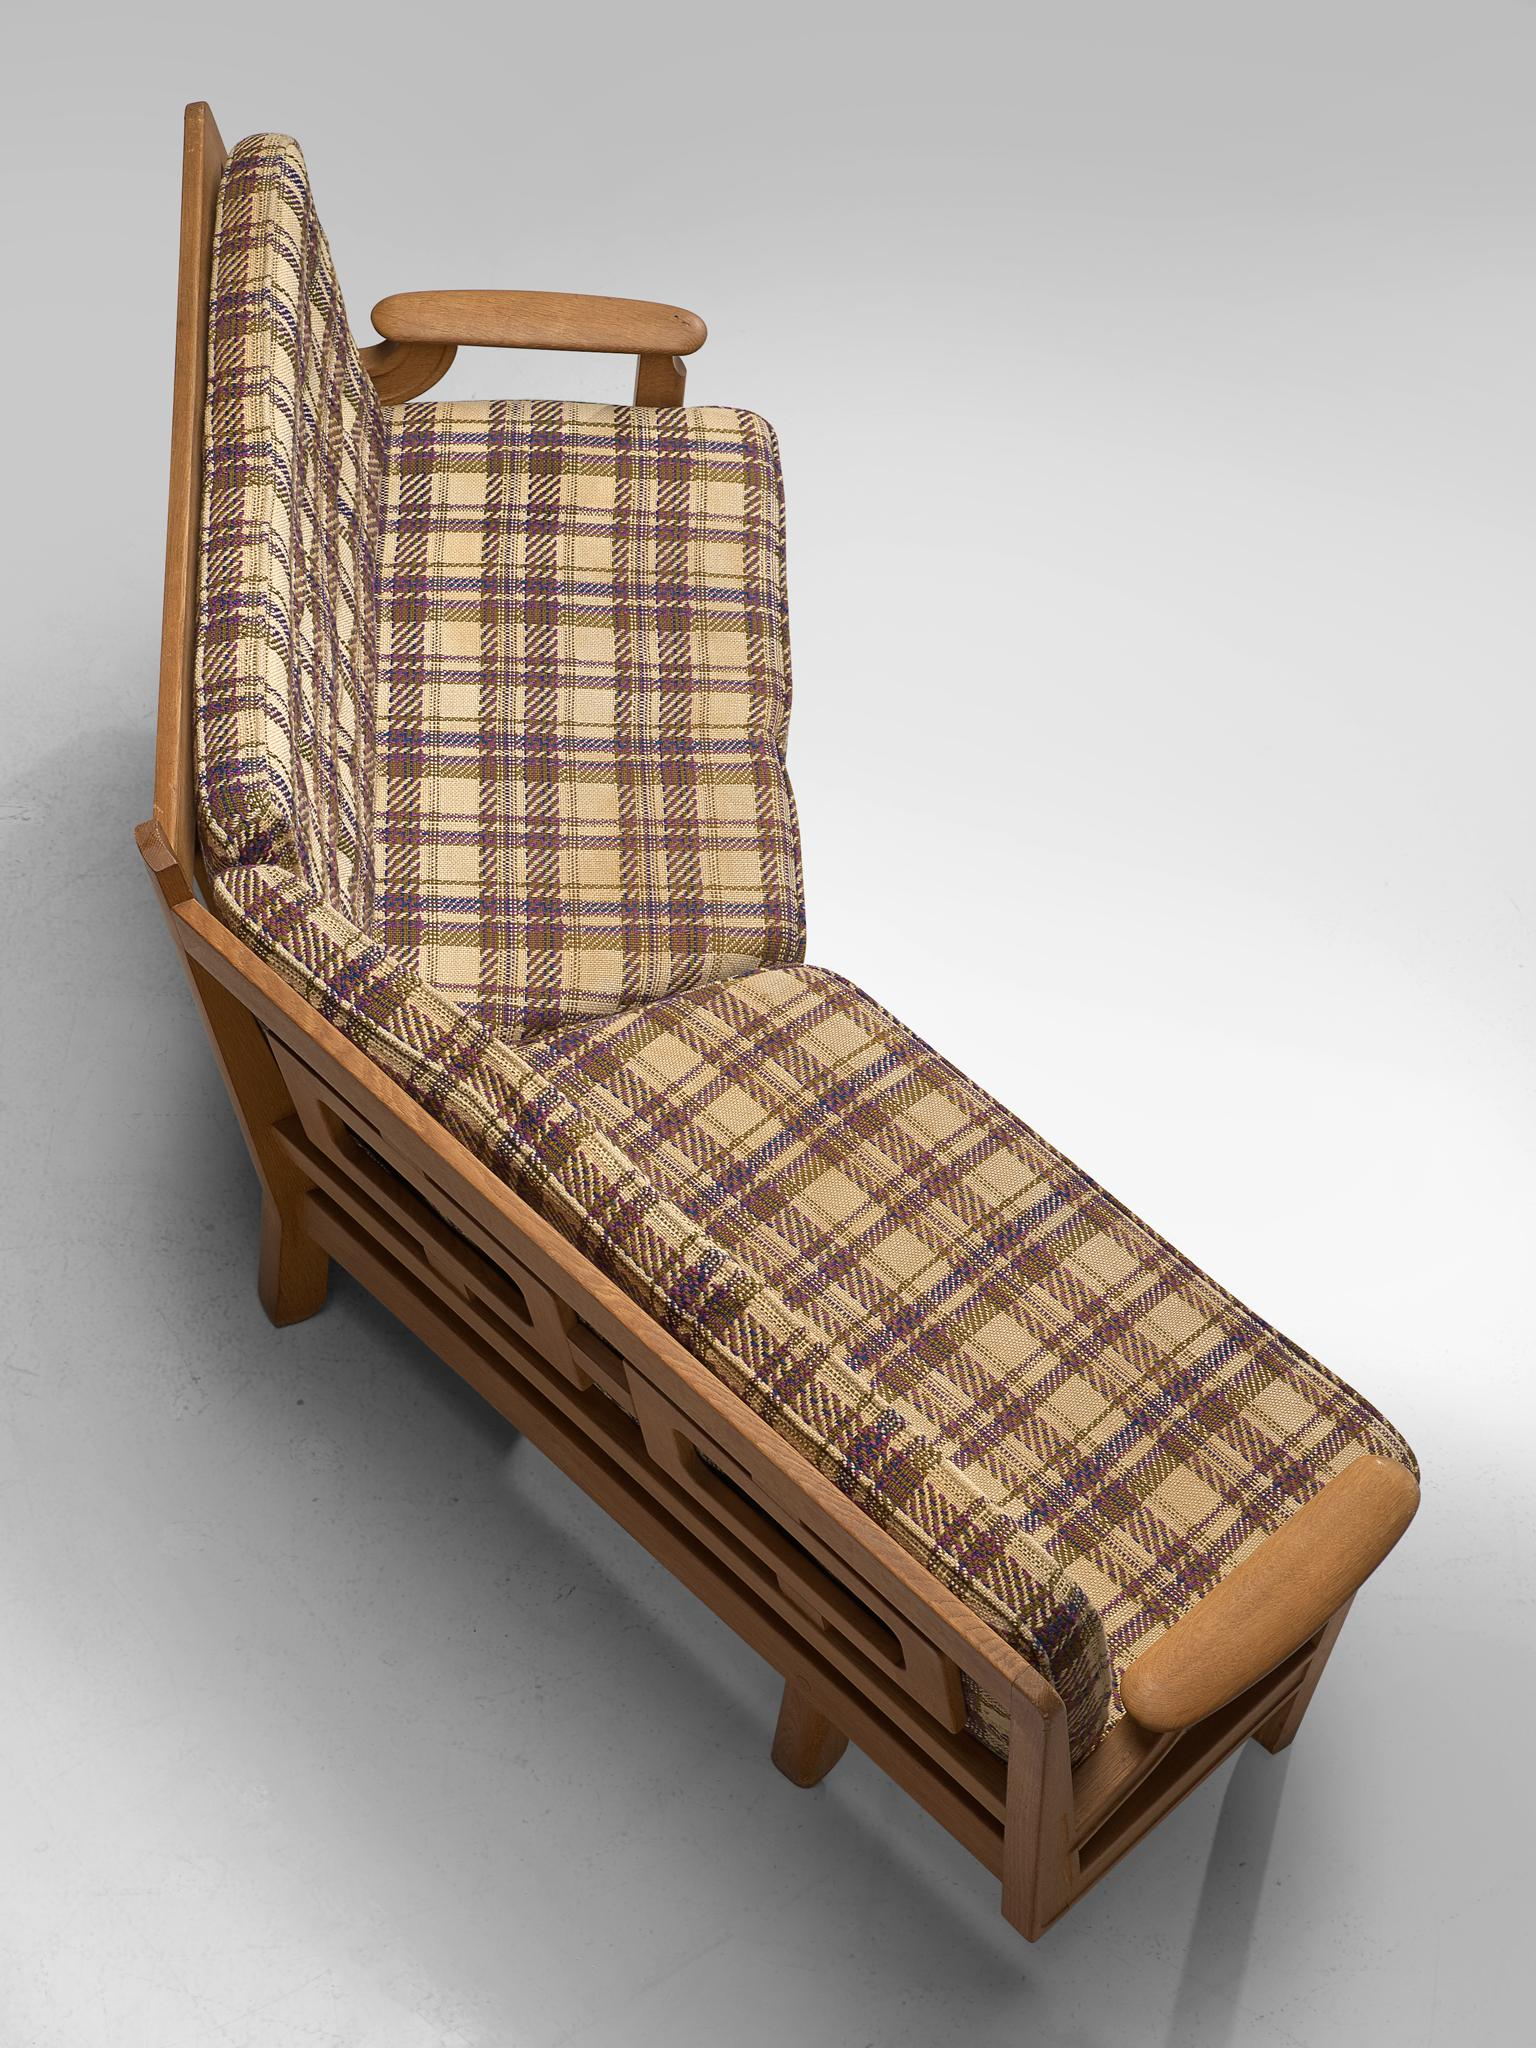 Guillerme U0026 Chambron Curved Sofa In Checkered Upholstery